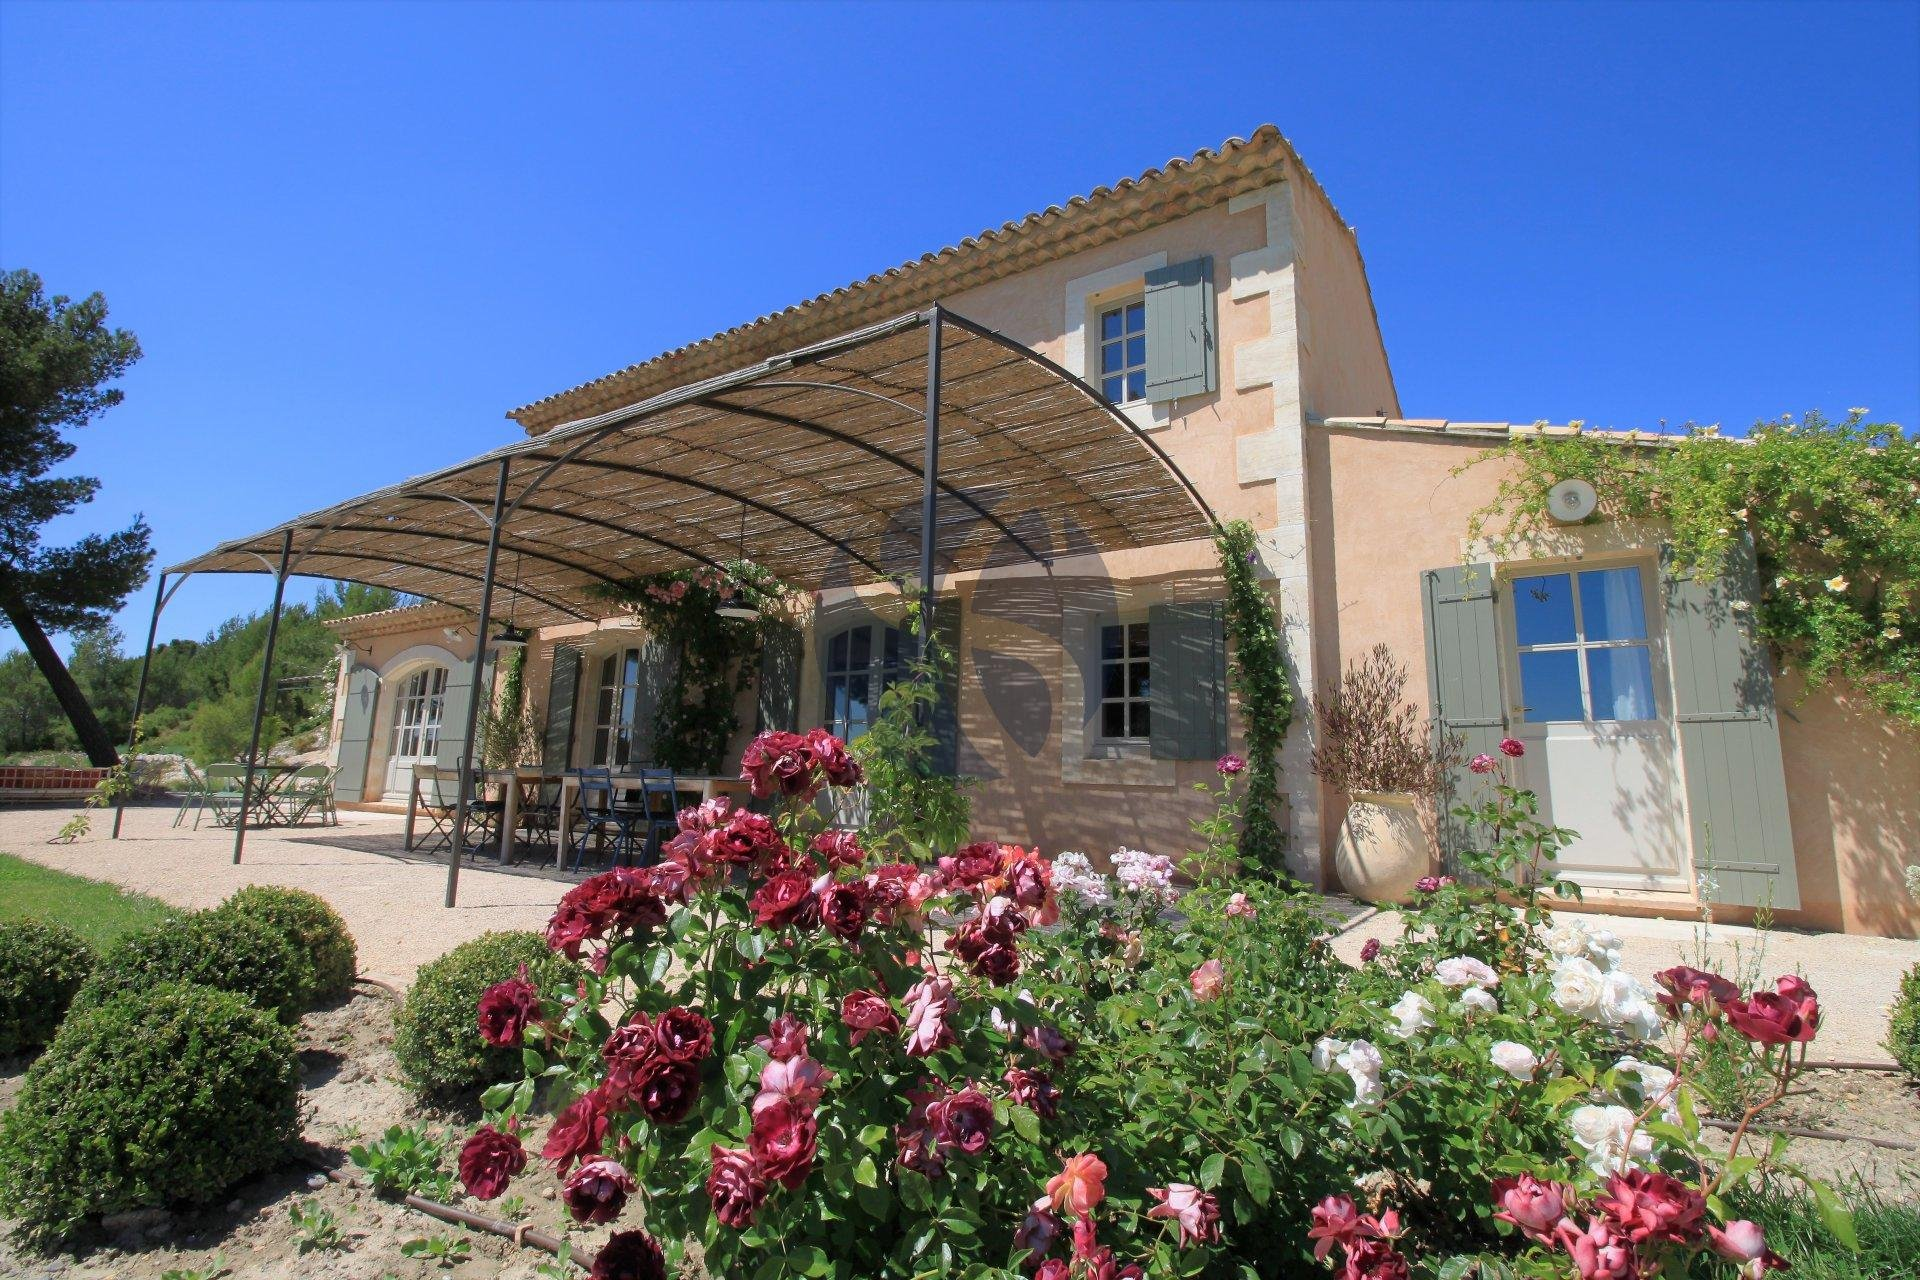 Property overlooking the Alpilles in Maussane